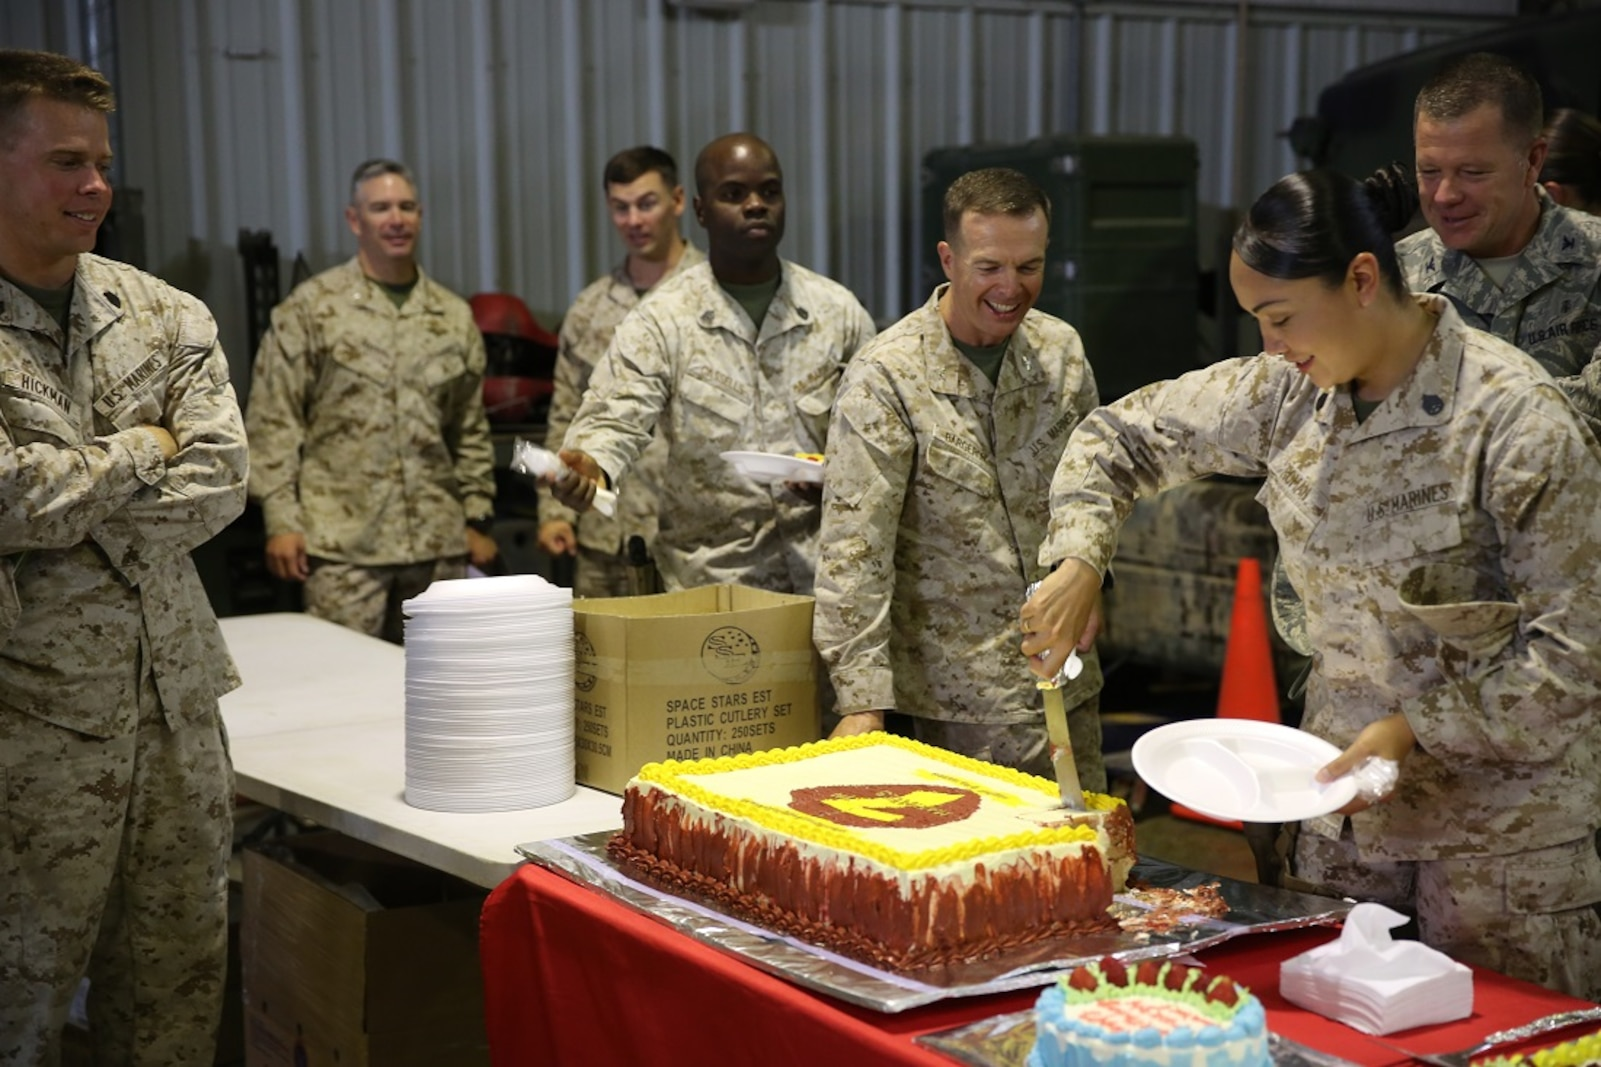 Col. Jay M. Bargeron and Marines with Special Purpose Marine Air Ground Task Force-Crisis Response-Central Command celebrate the 7th Marine Regiment's 98th anniversary after a ceremony, held in an undisclosed location in Southwest Asia, Aug. 15, 2015. The 7th Marine Regiment Headquarters and 3rd Battalion, 7th Marines are currently deployed with the SPMAGTF-CR-CC and took time to remember the regiment's storied history and rededicate themselves to their current work with Operation Inherent Resolve.